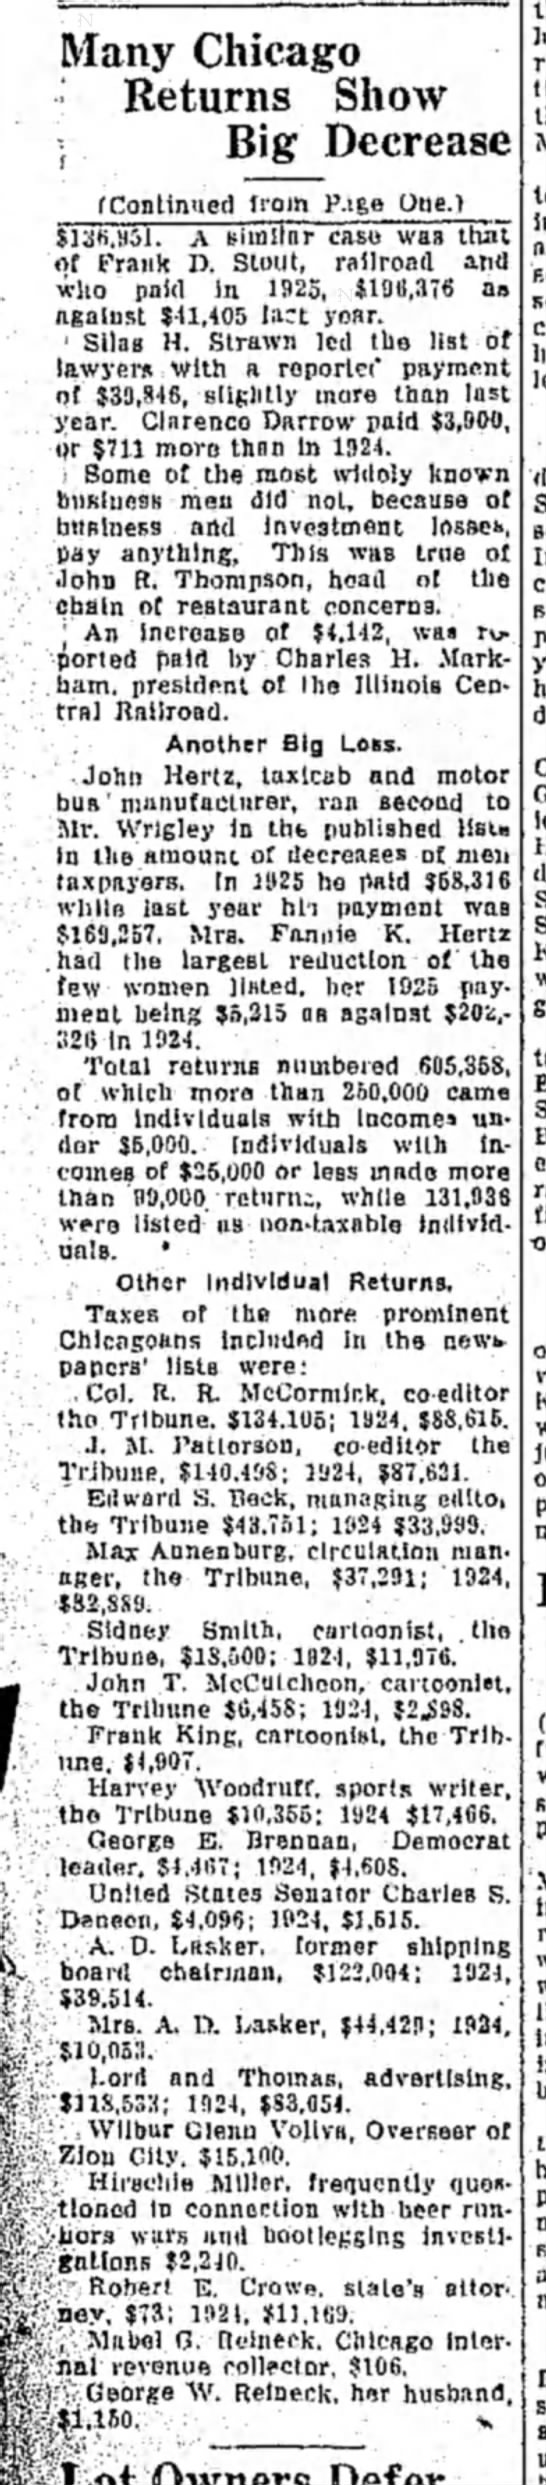 1 Sep 1925 pg1 - The Hutchinson News (Kansas) HTW 1924 Taxes - Many Chicago Returns Show • Big Decrease...